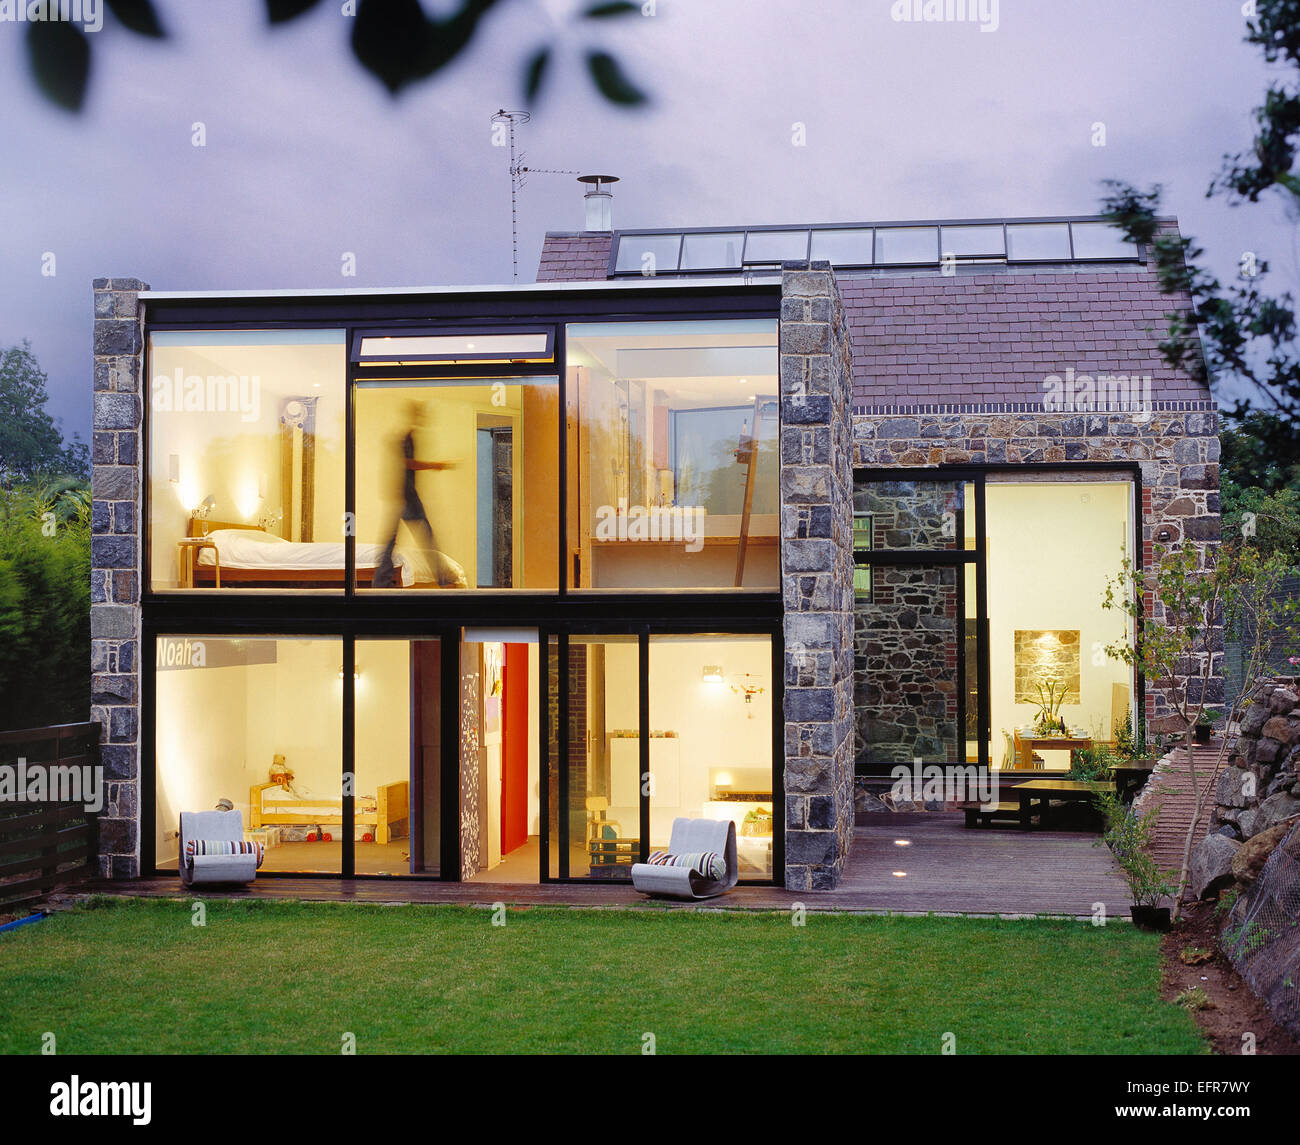 Architecture. Modern house exterior at dusk. Guernsey. - Stock Image